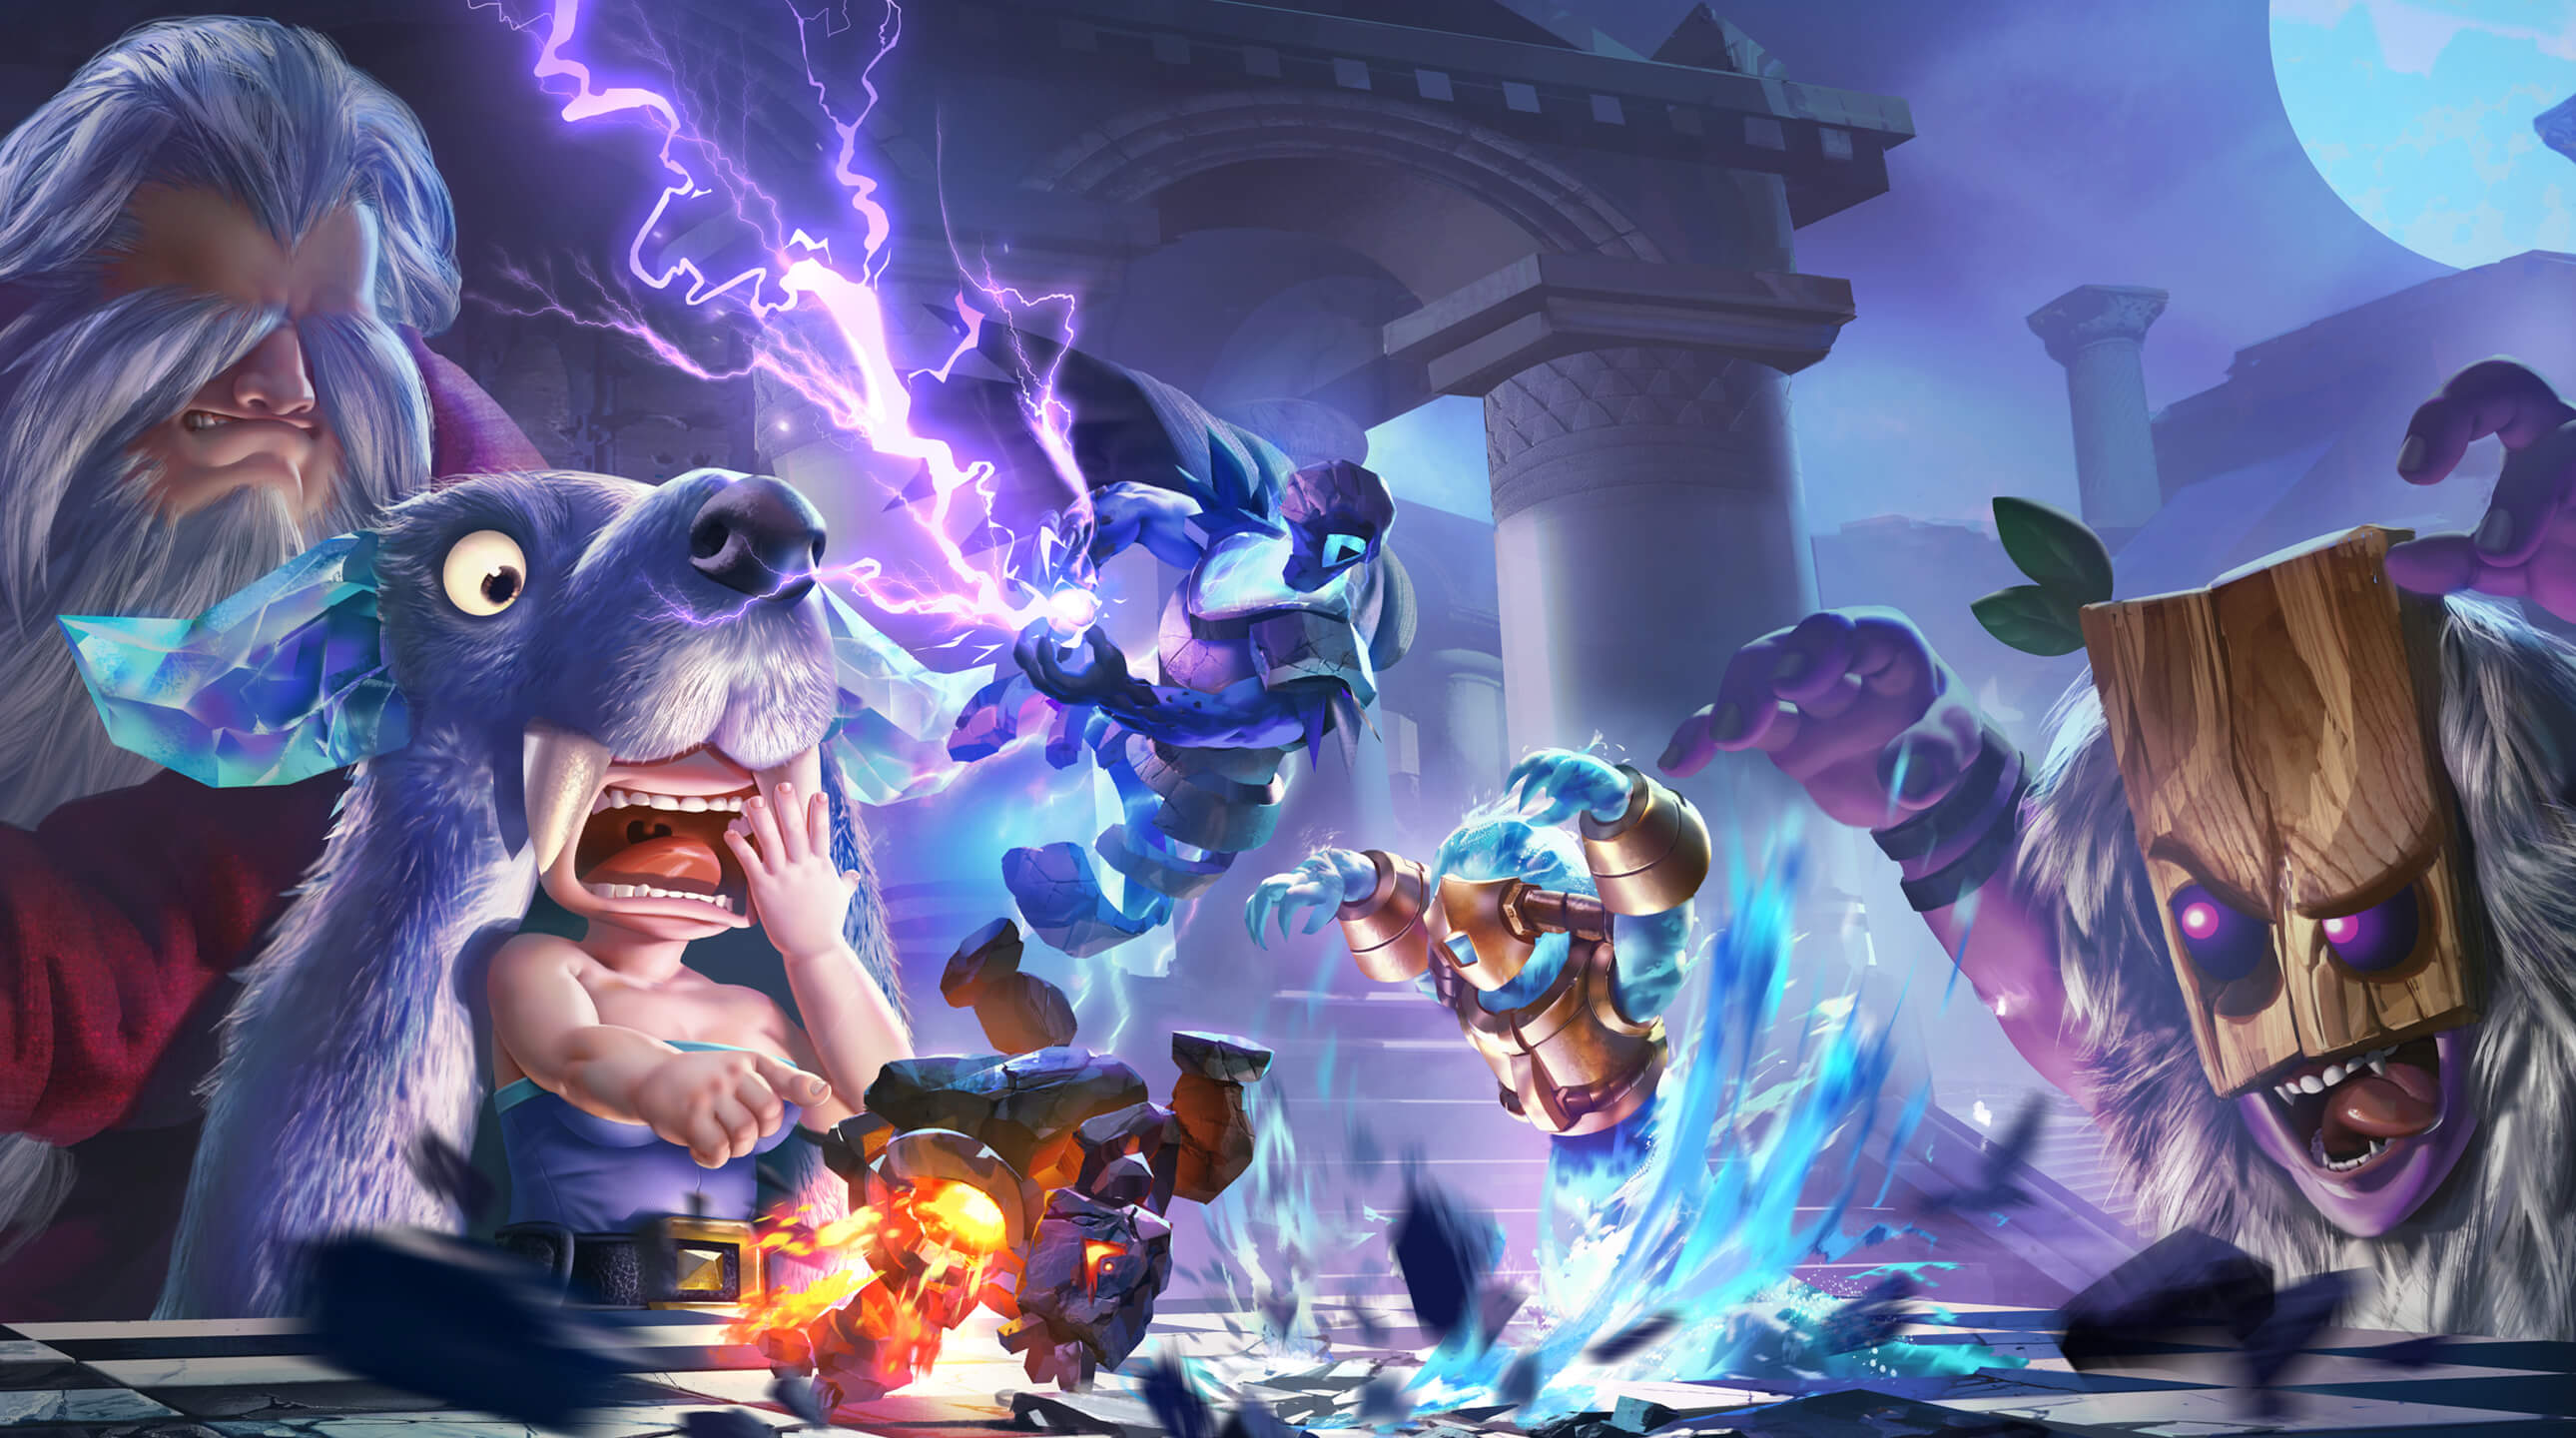 auto chess game background wallpaper 74025